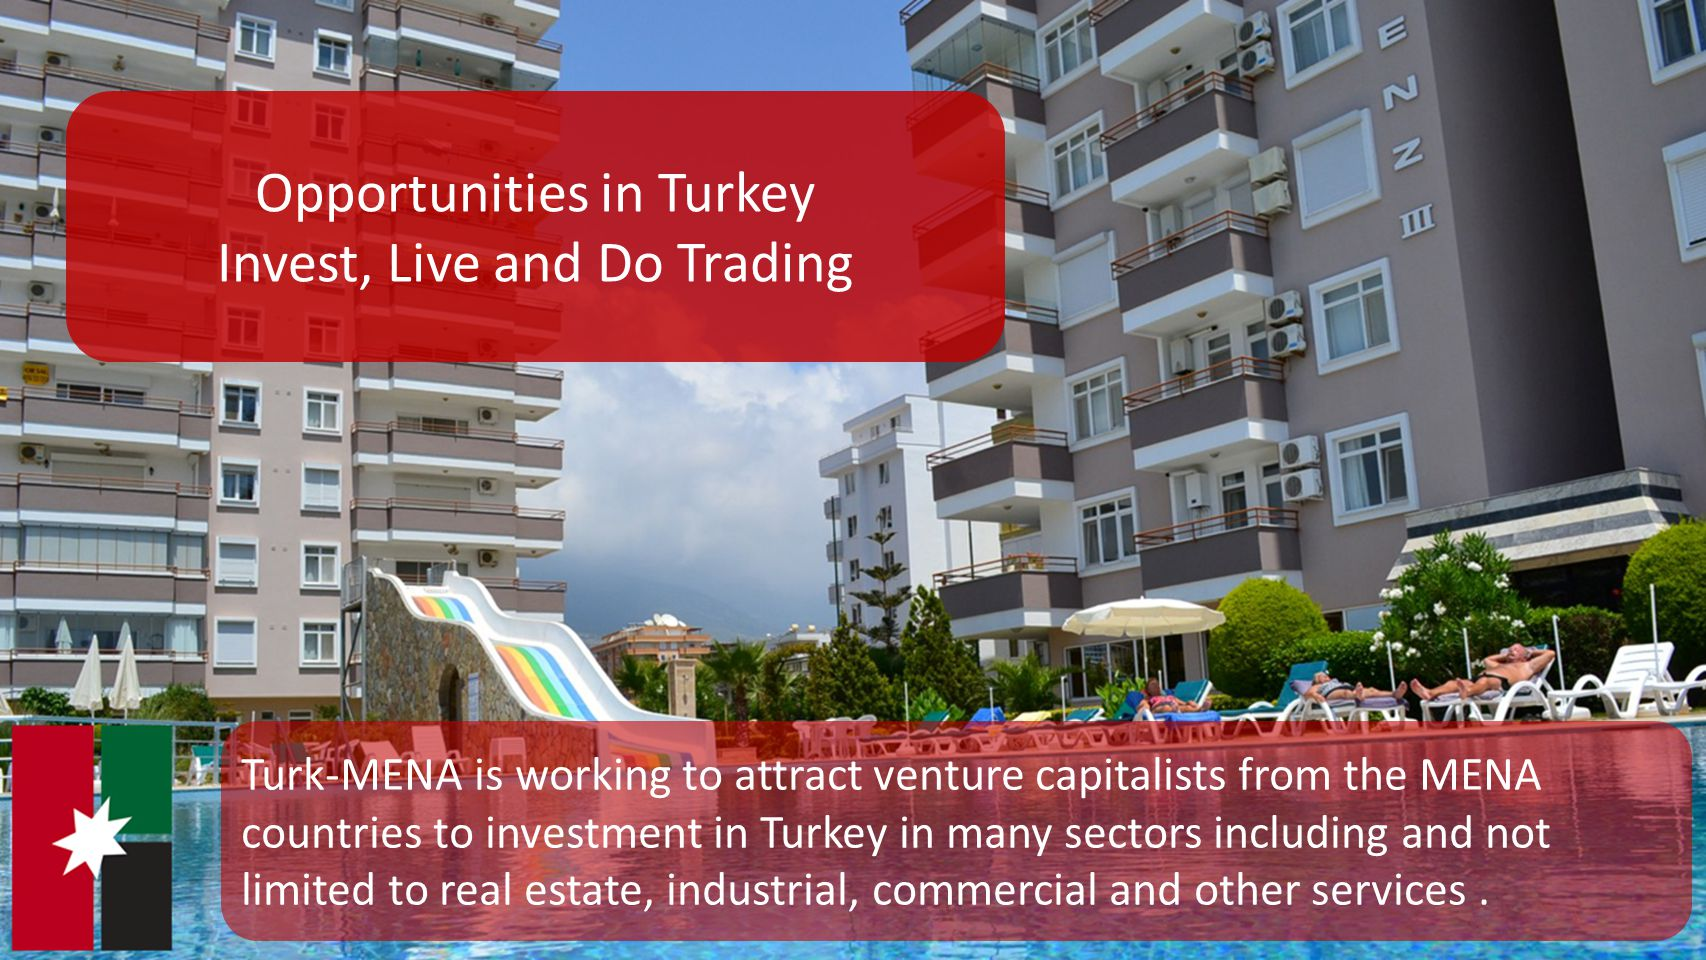 Opportunities in Turkey Invest, Live and Do Trading